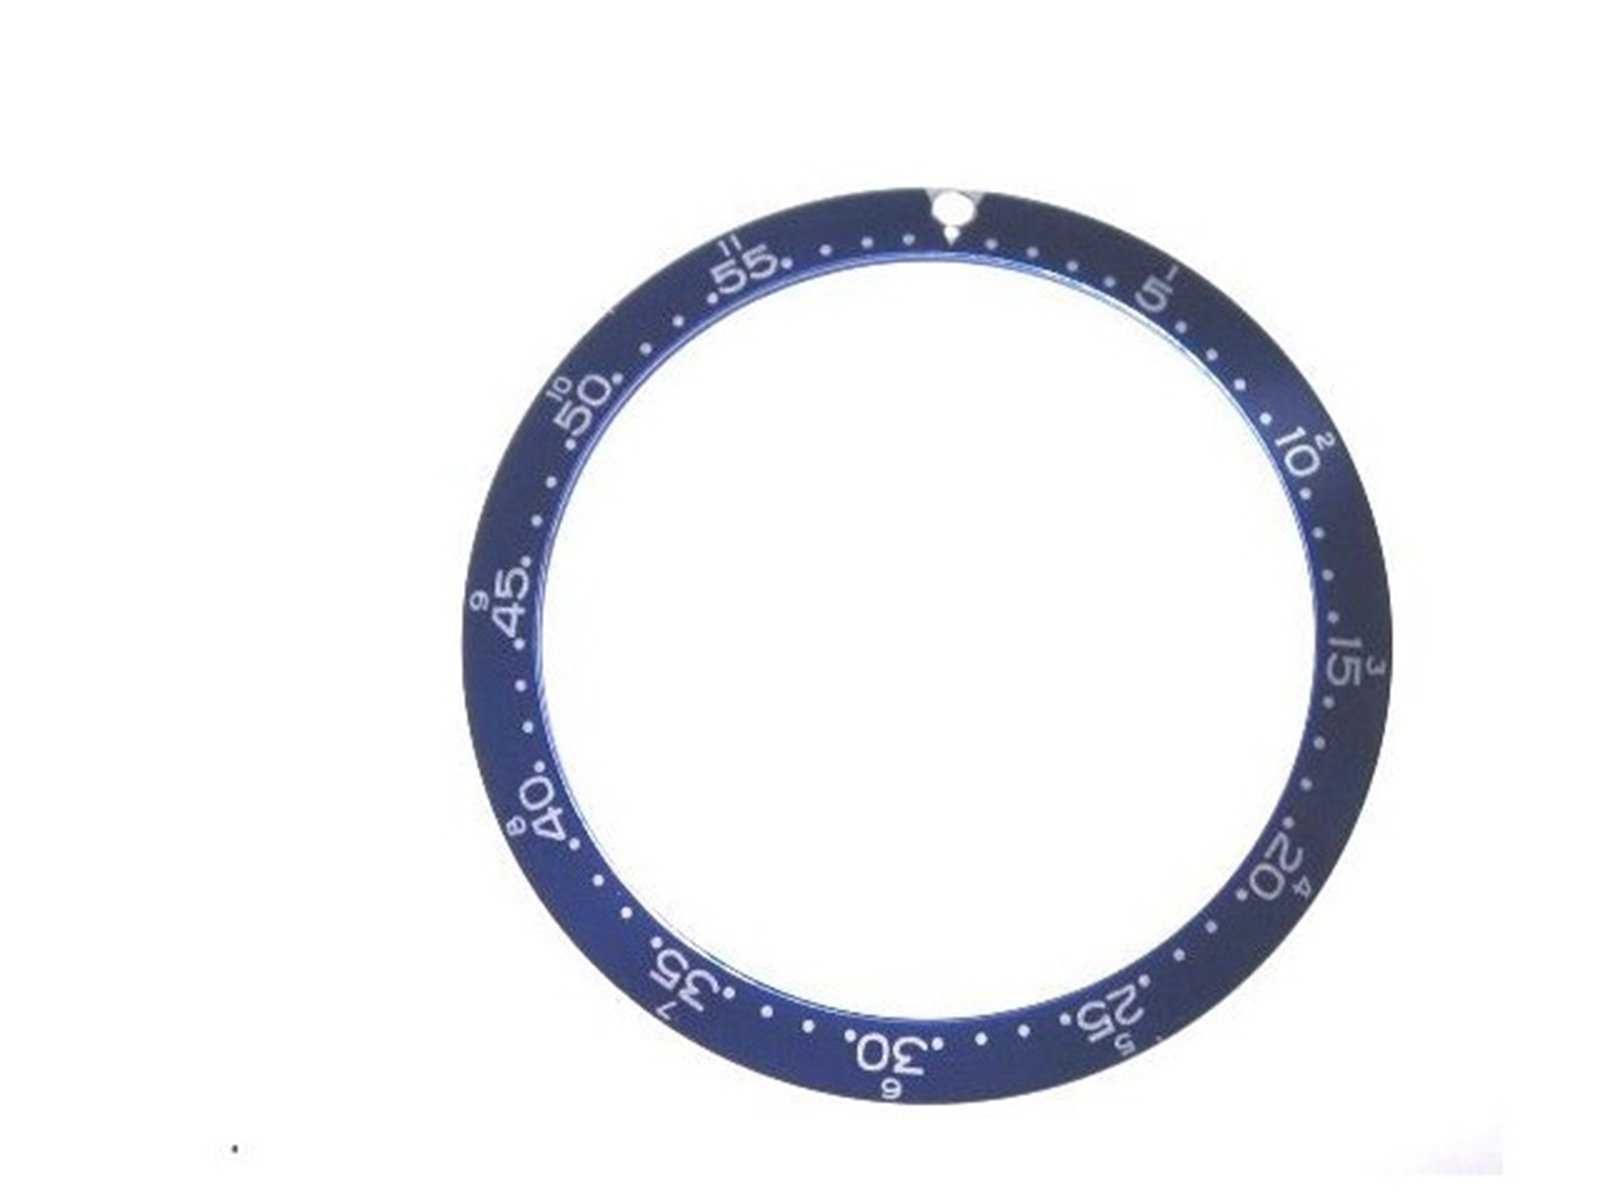 BEZEL INSERT FOR TAG HEUER SKIPPER CHRONOGRAPH BLUE PART by Ewatchparts